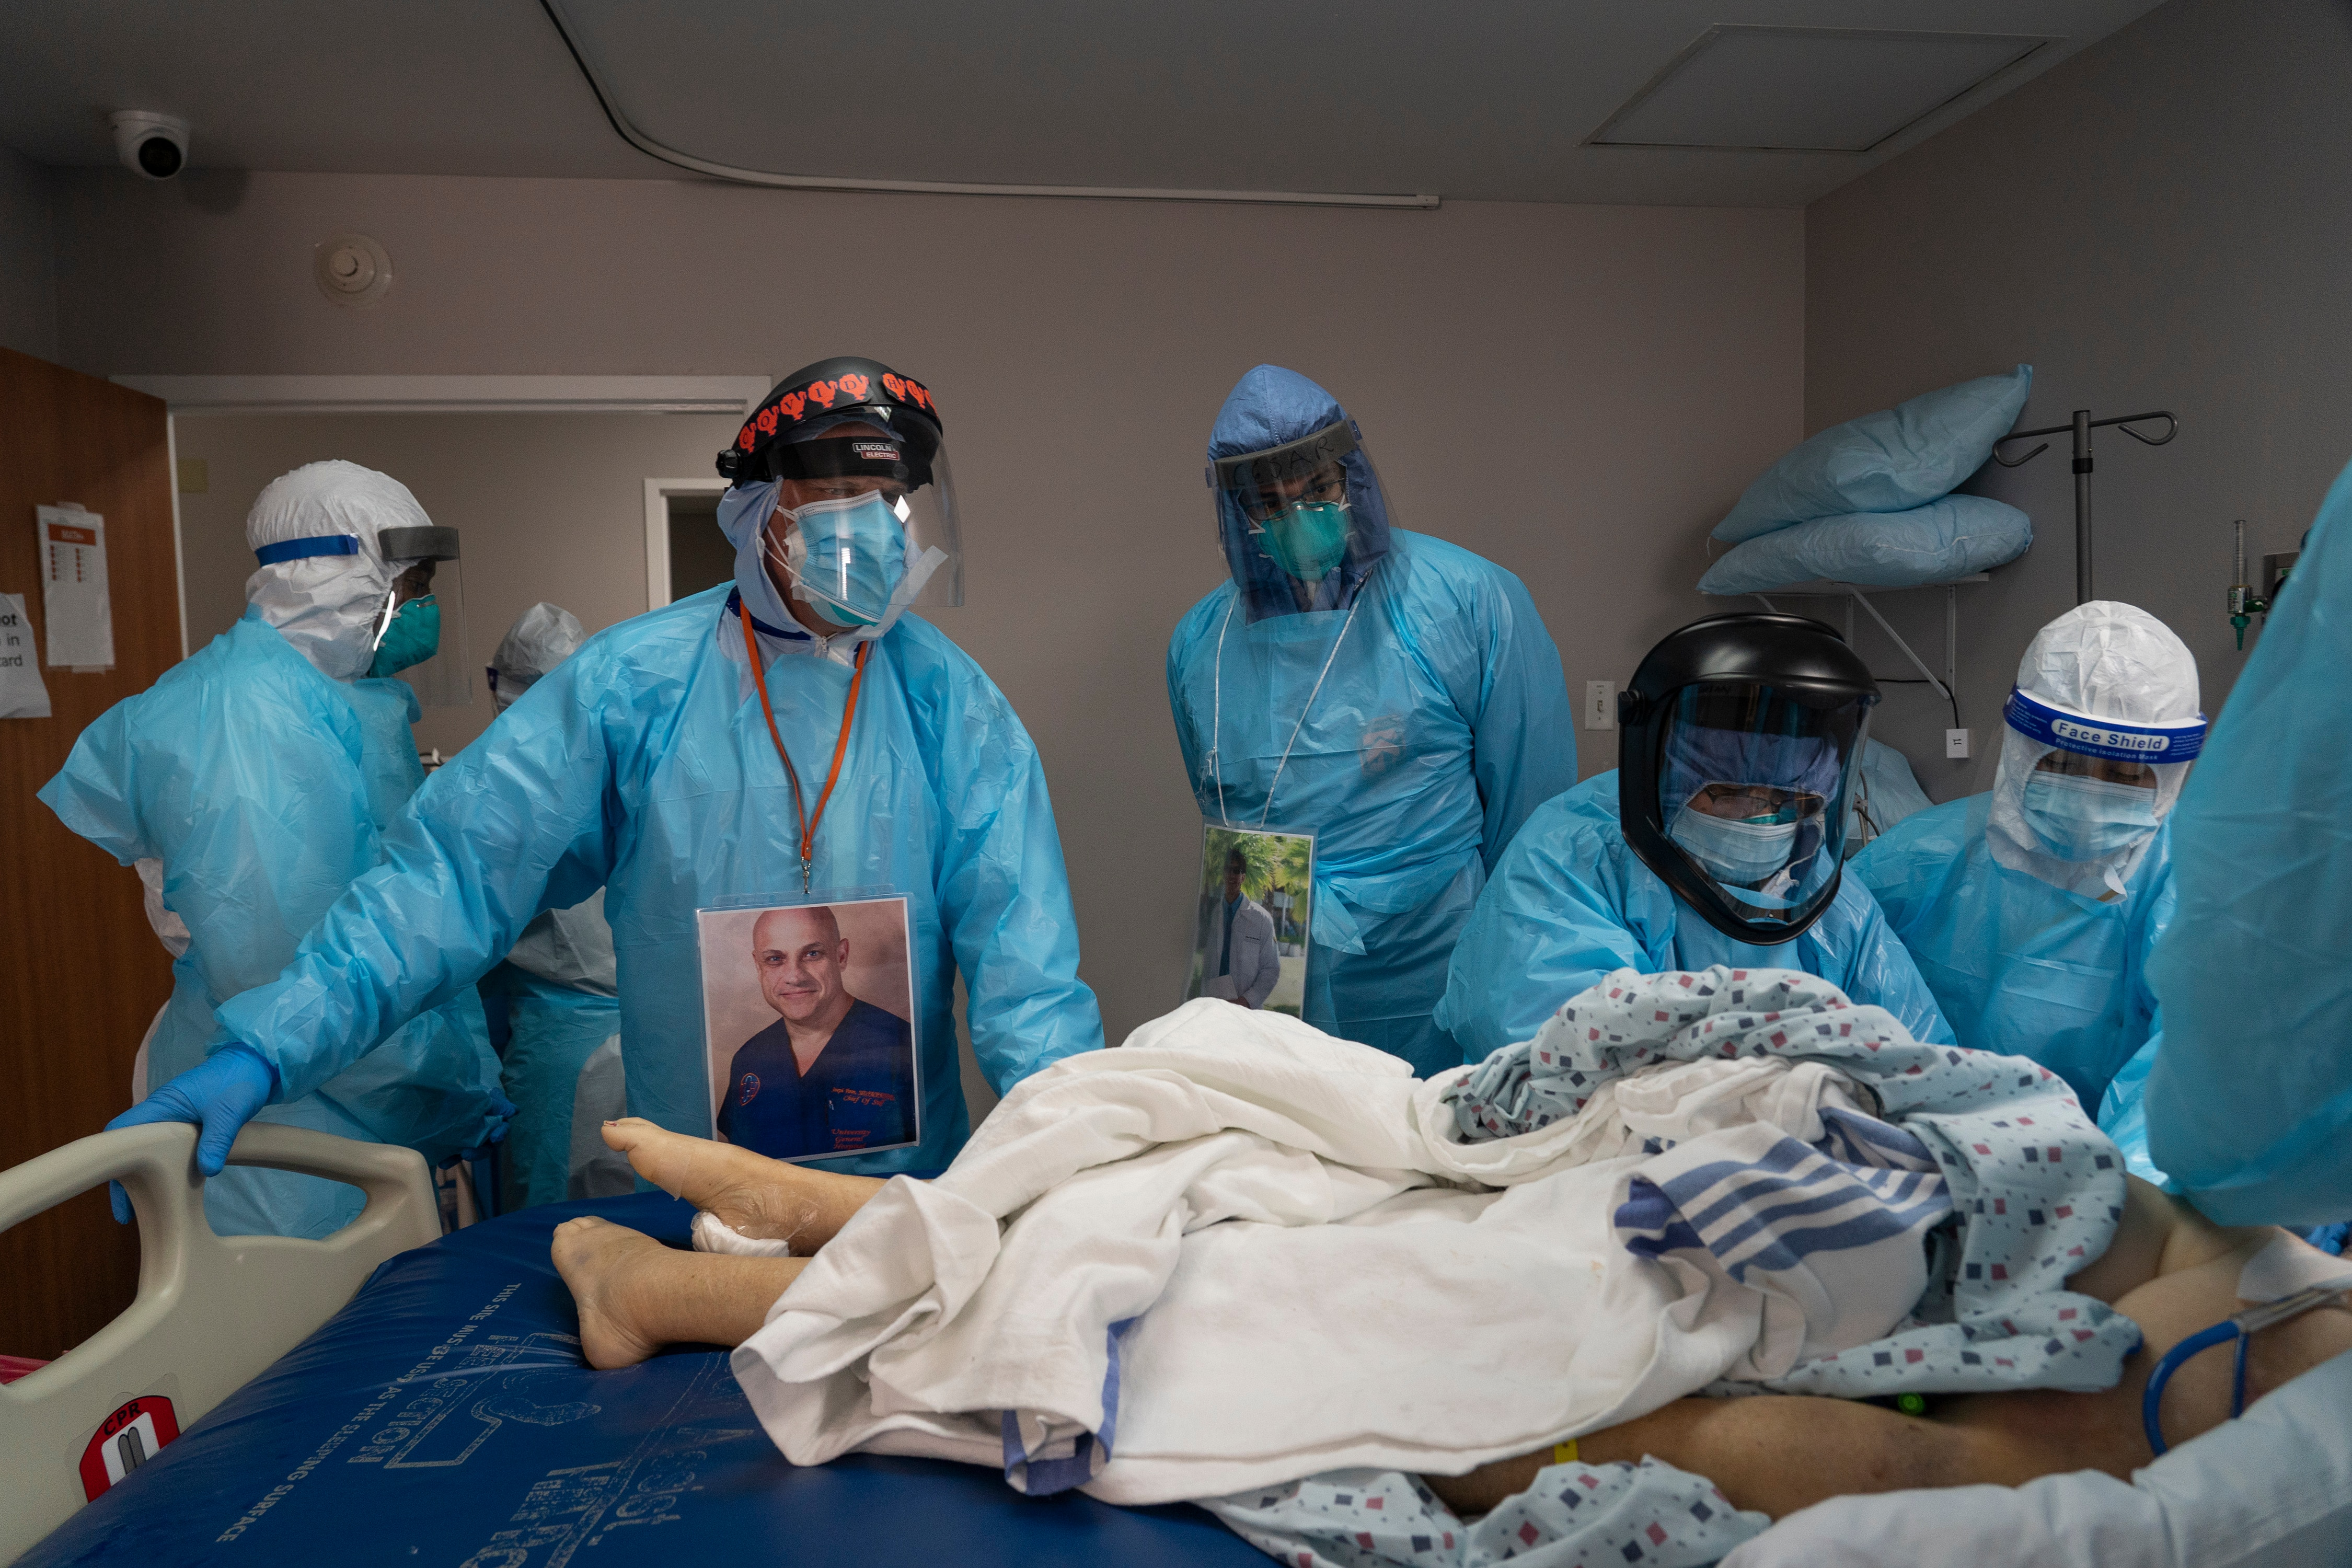 Dr Joseph Varon (2nd L) supervises the handling of a patient after death in the COVID-19 intensive care unit at the United Memorial Medical Center on in Houston